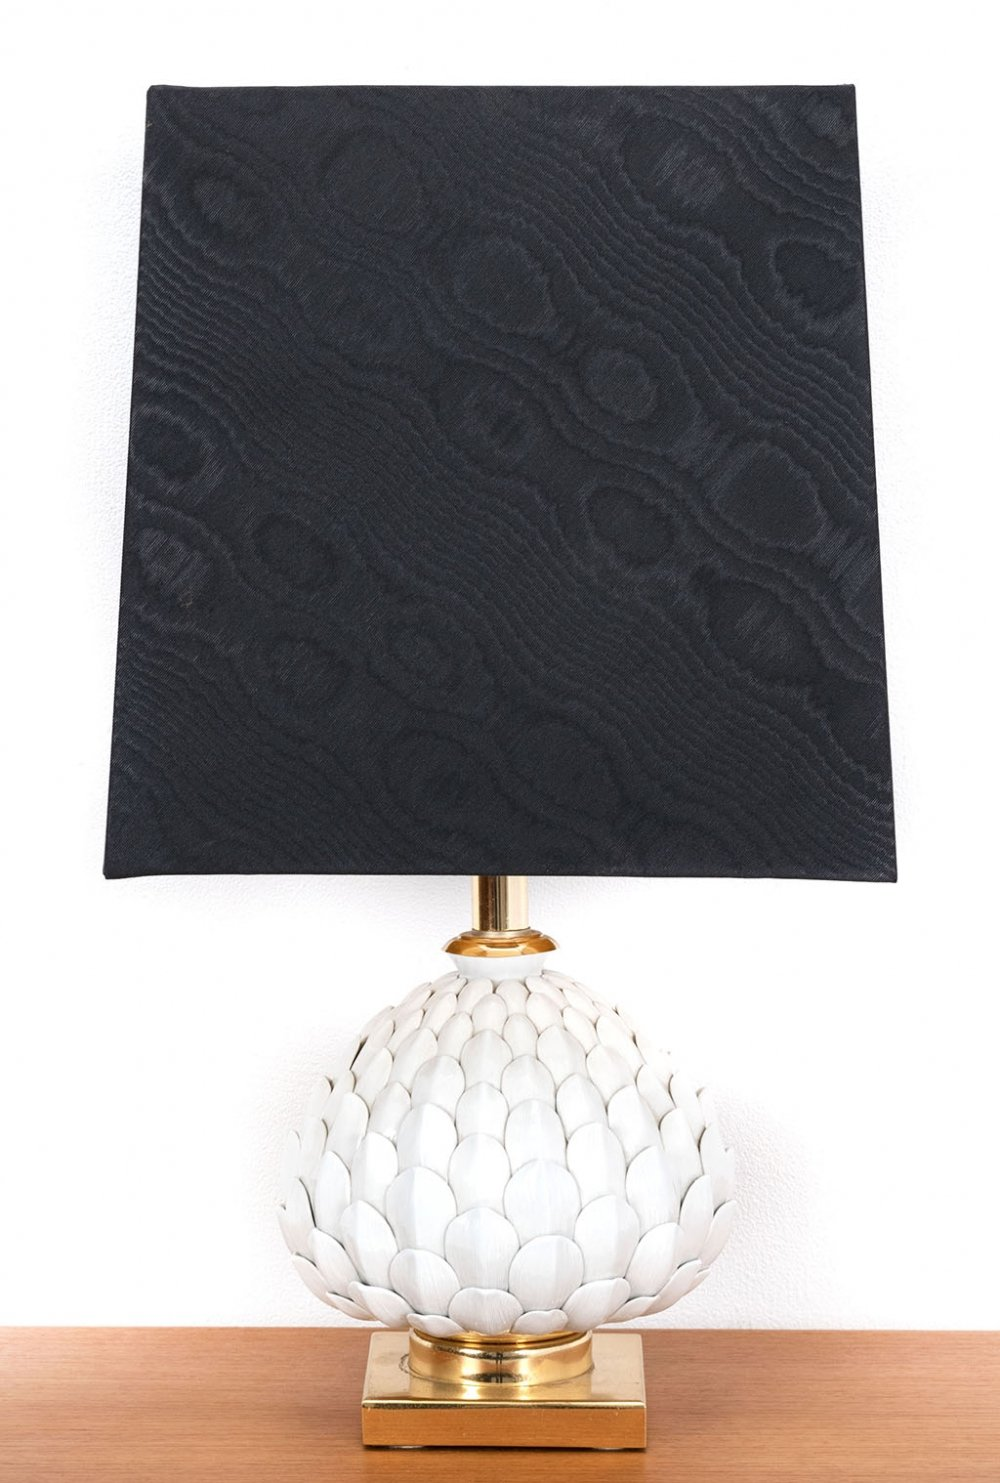 Decorative porcelain & brass table lamp with fabric shade